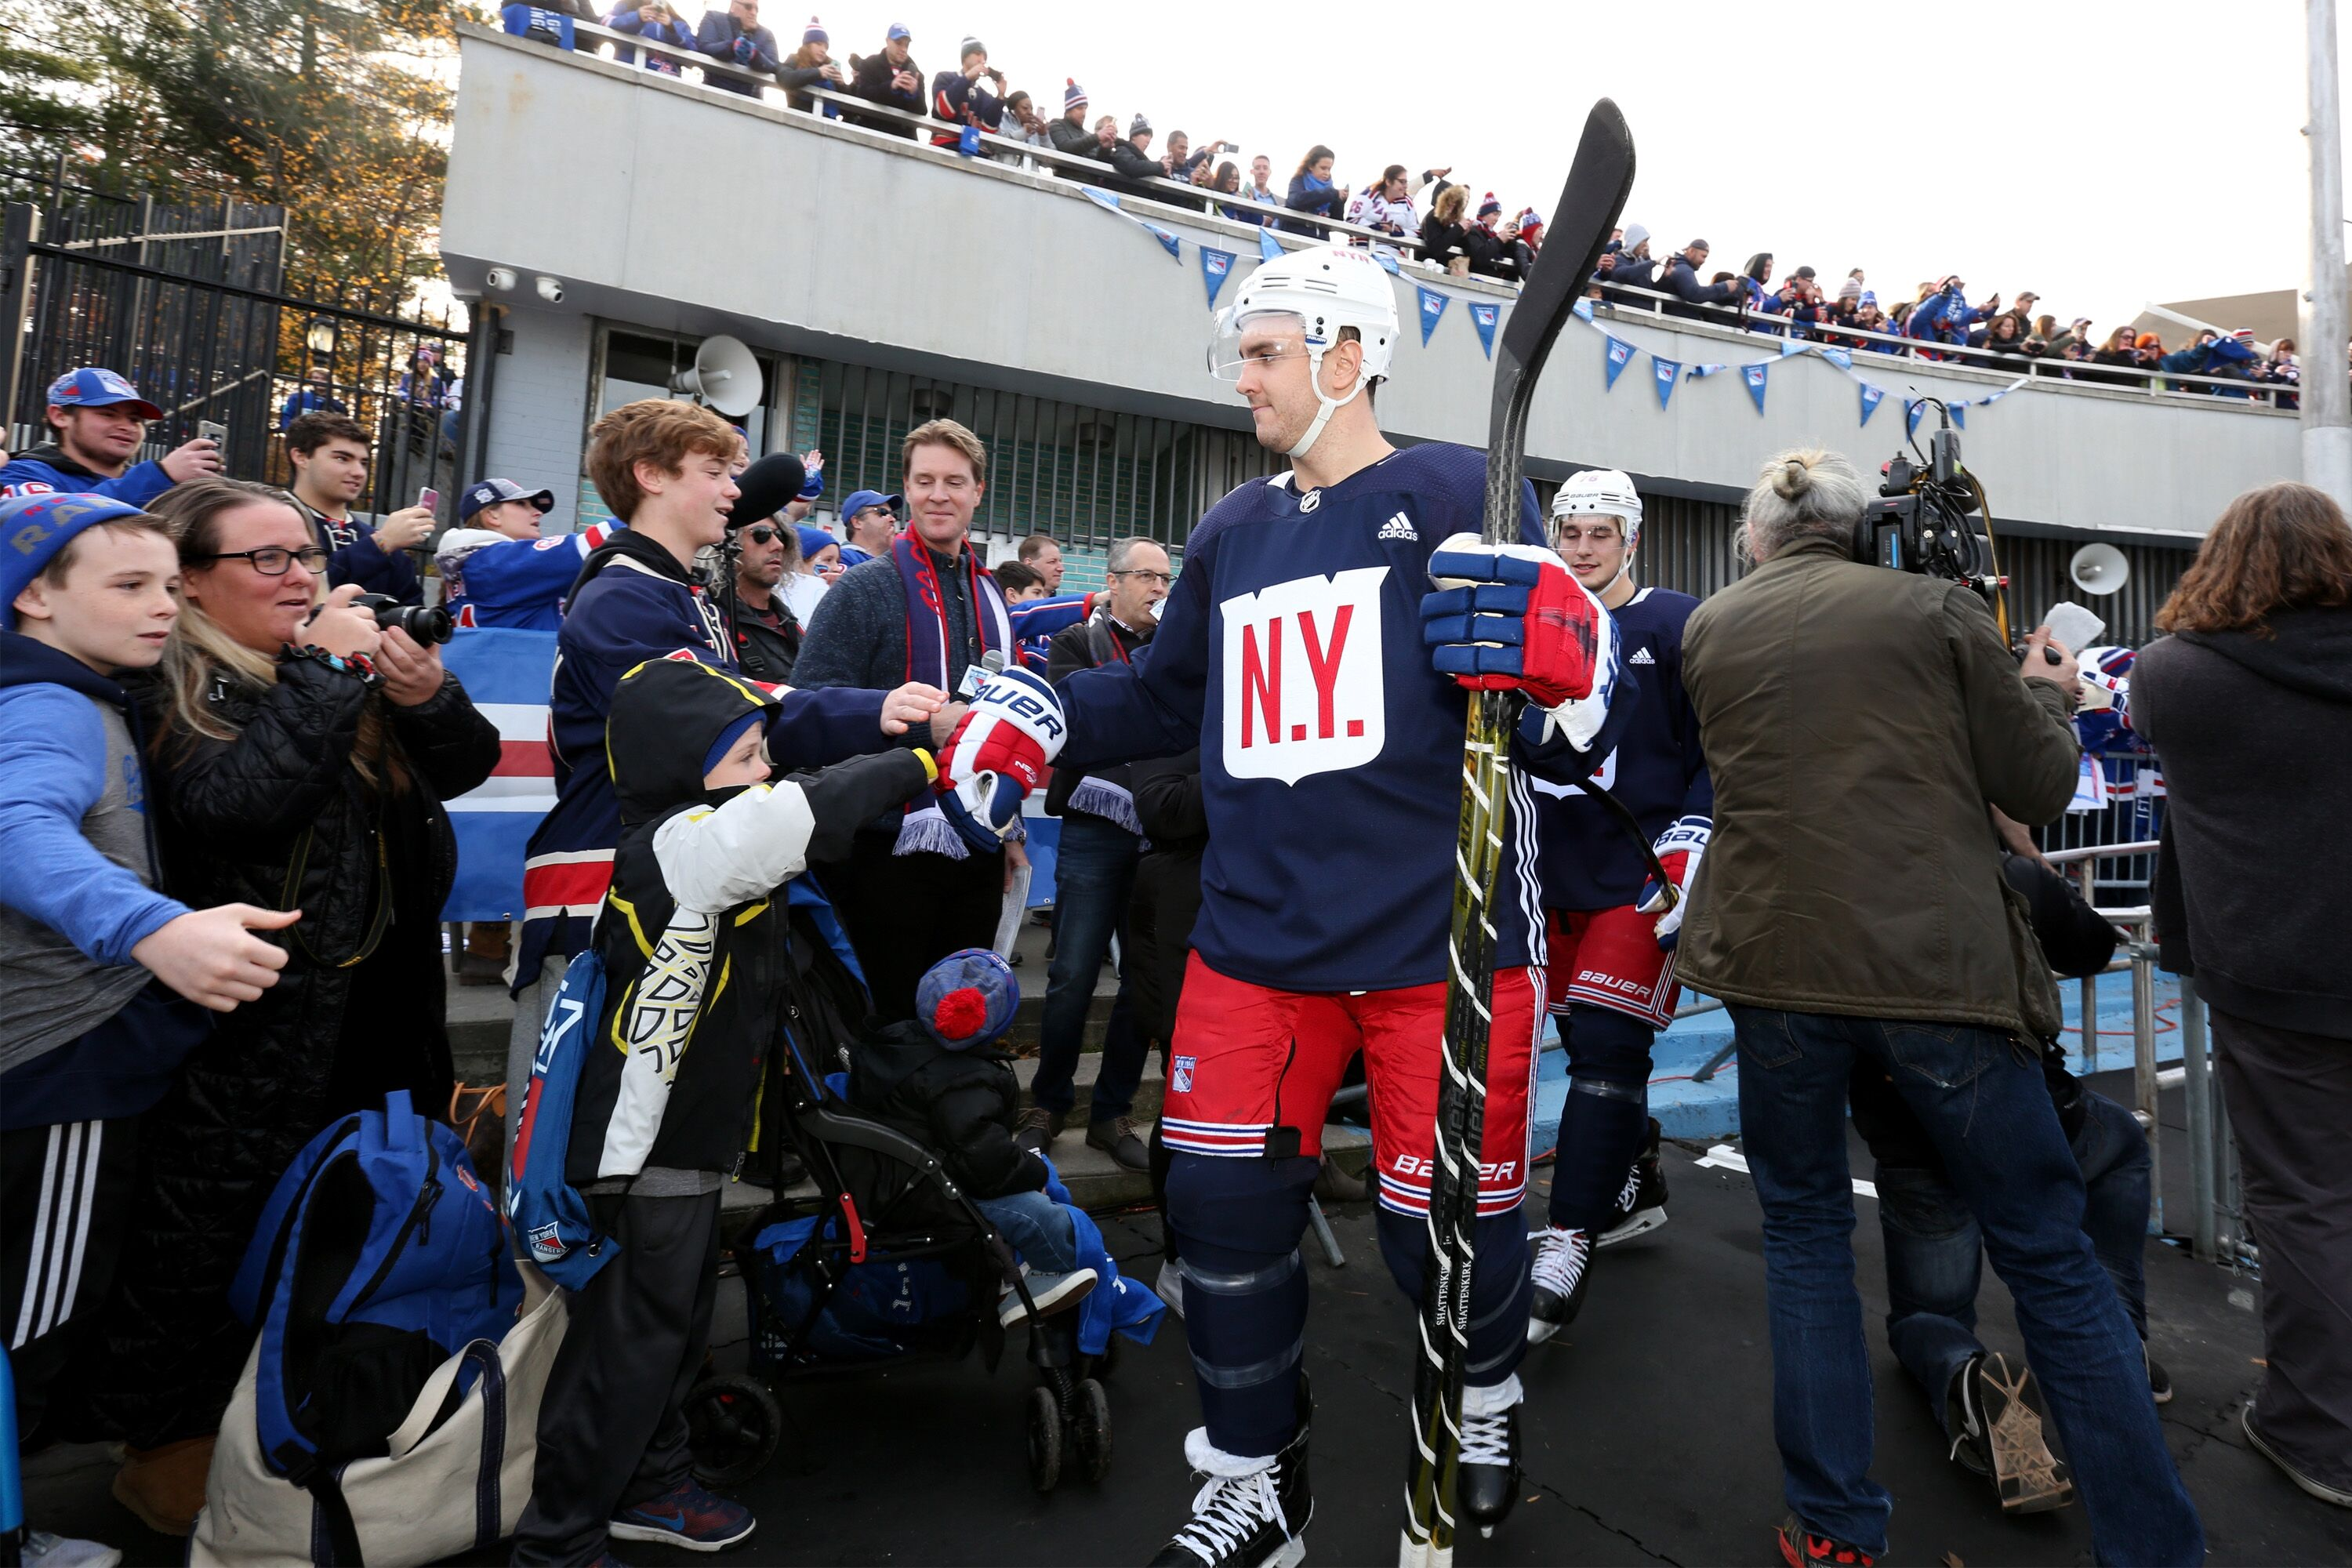 884542944-new-york-rangers-open-practice-and-youth-clinic-in-central-park.jpg